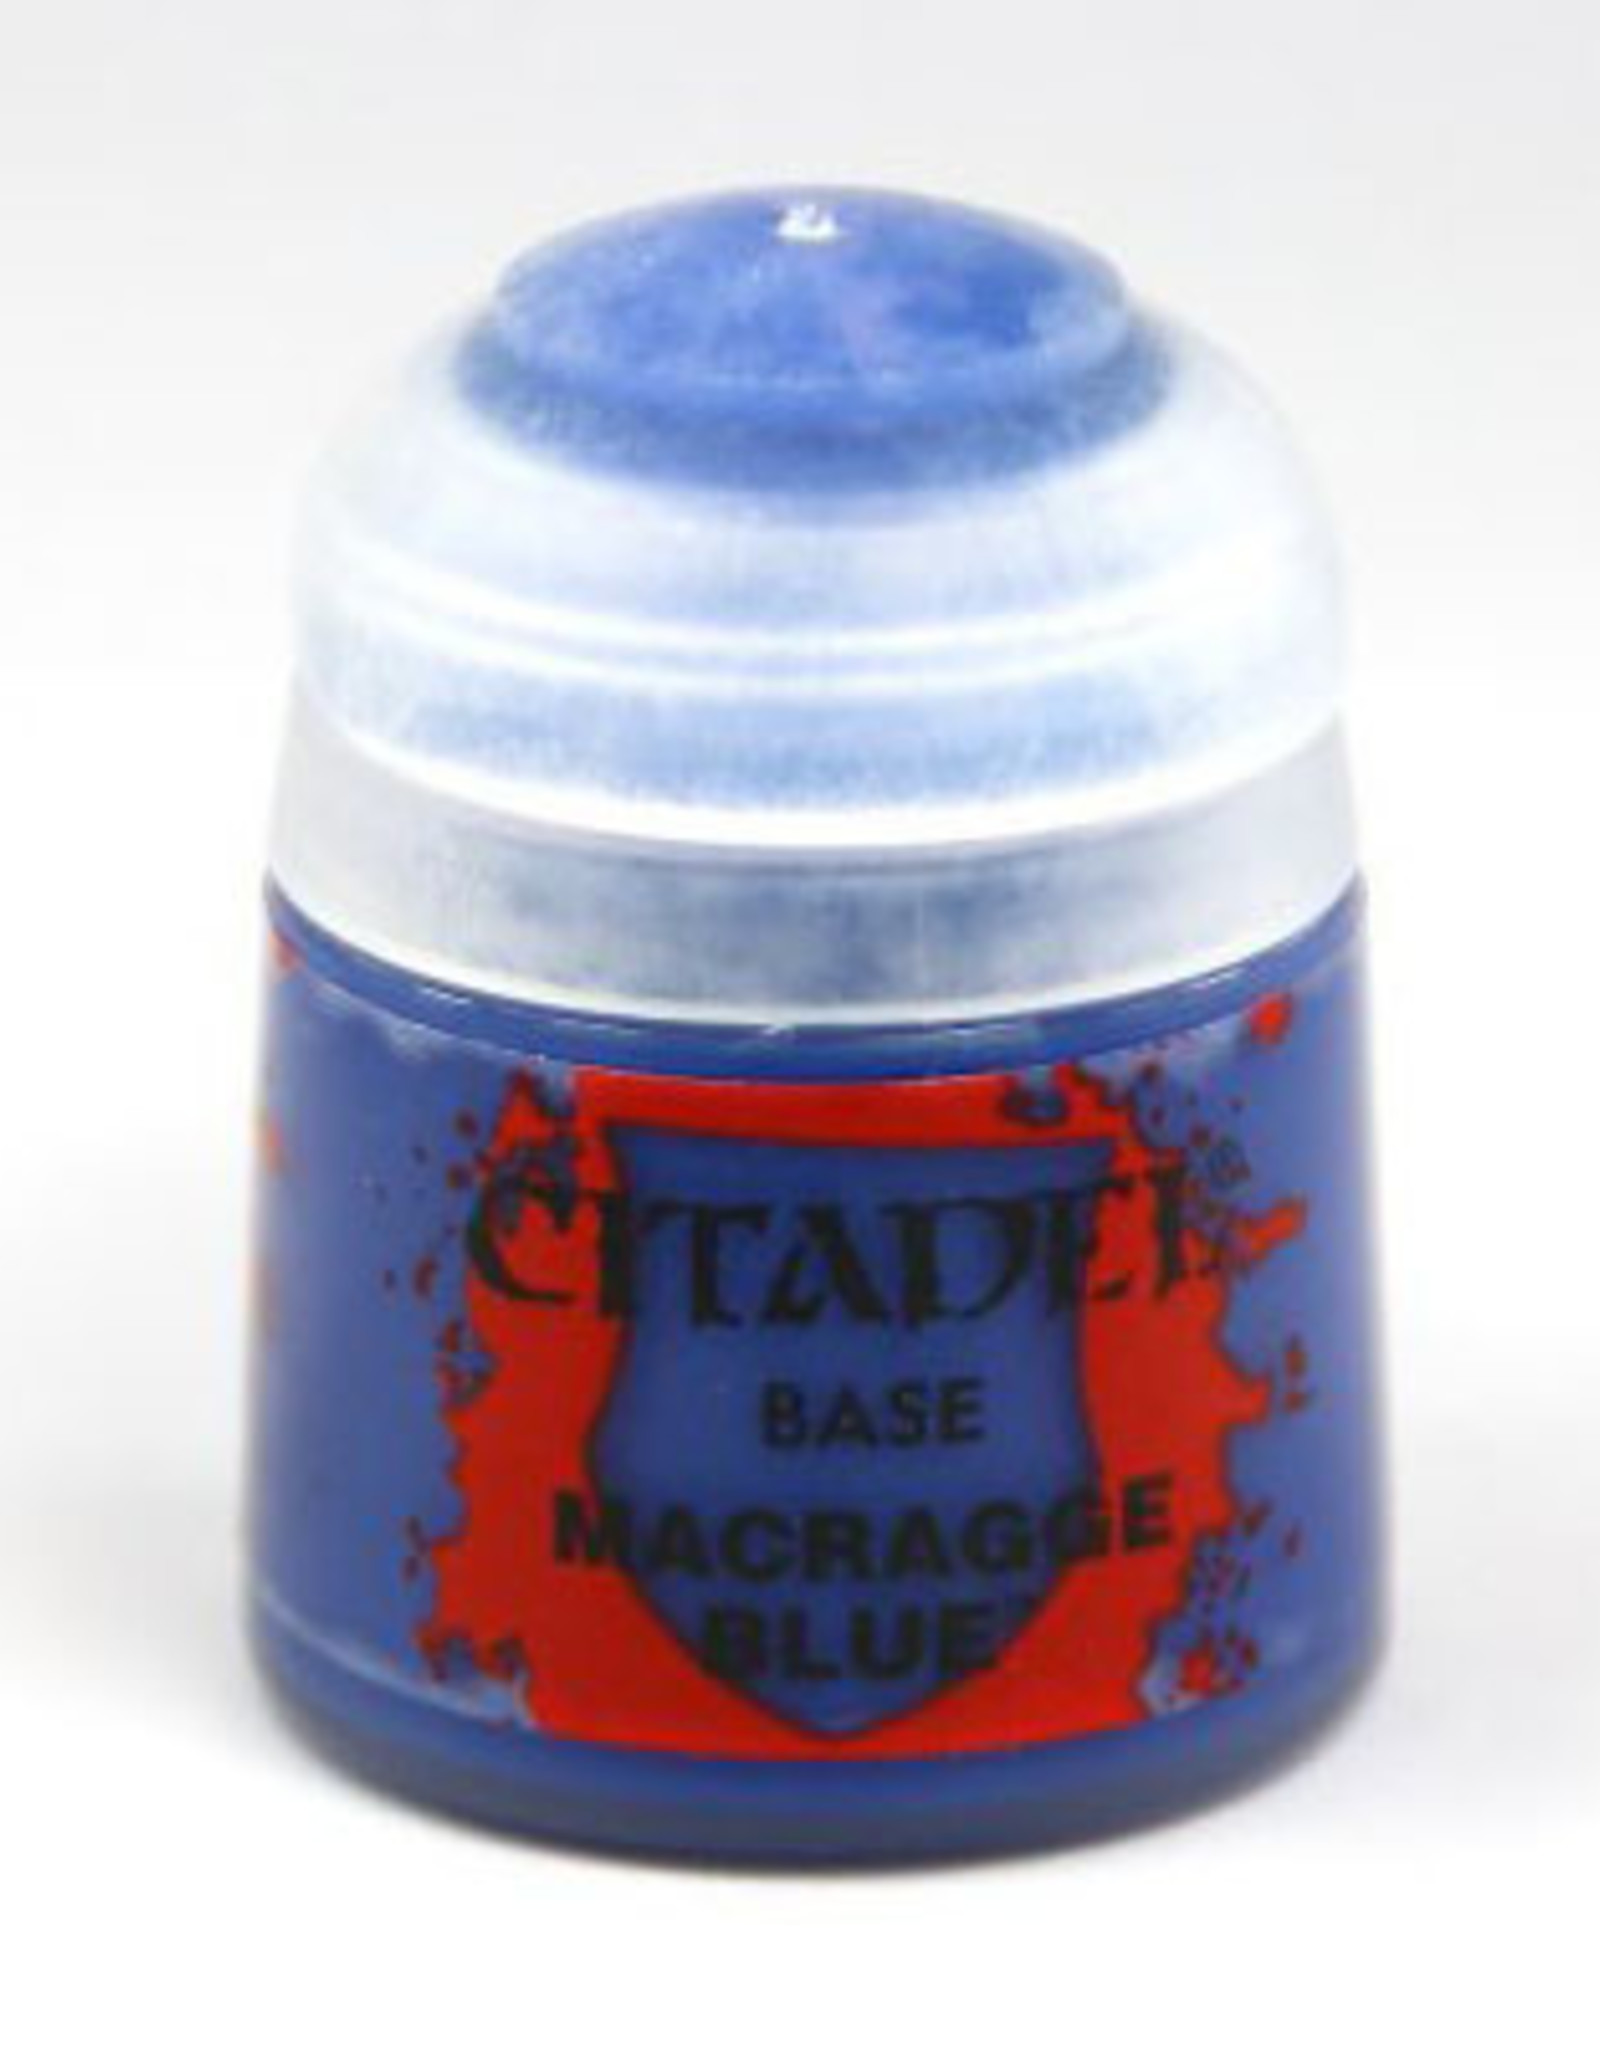 Games Workshop Citadel Paint: Base - Macragge Blue